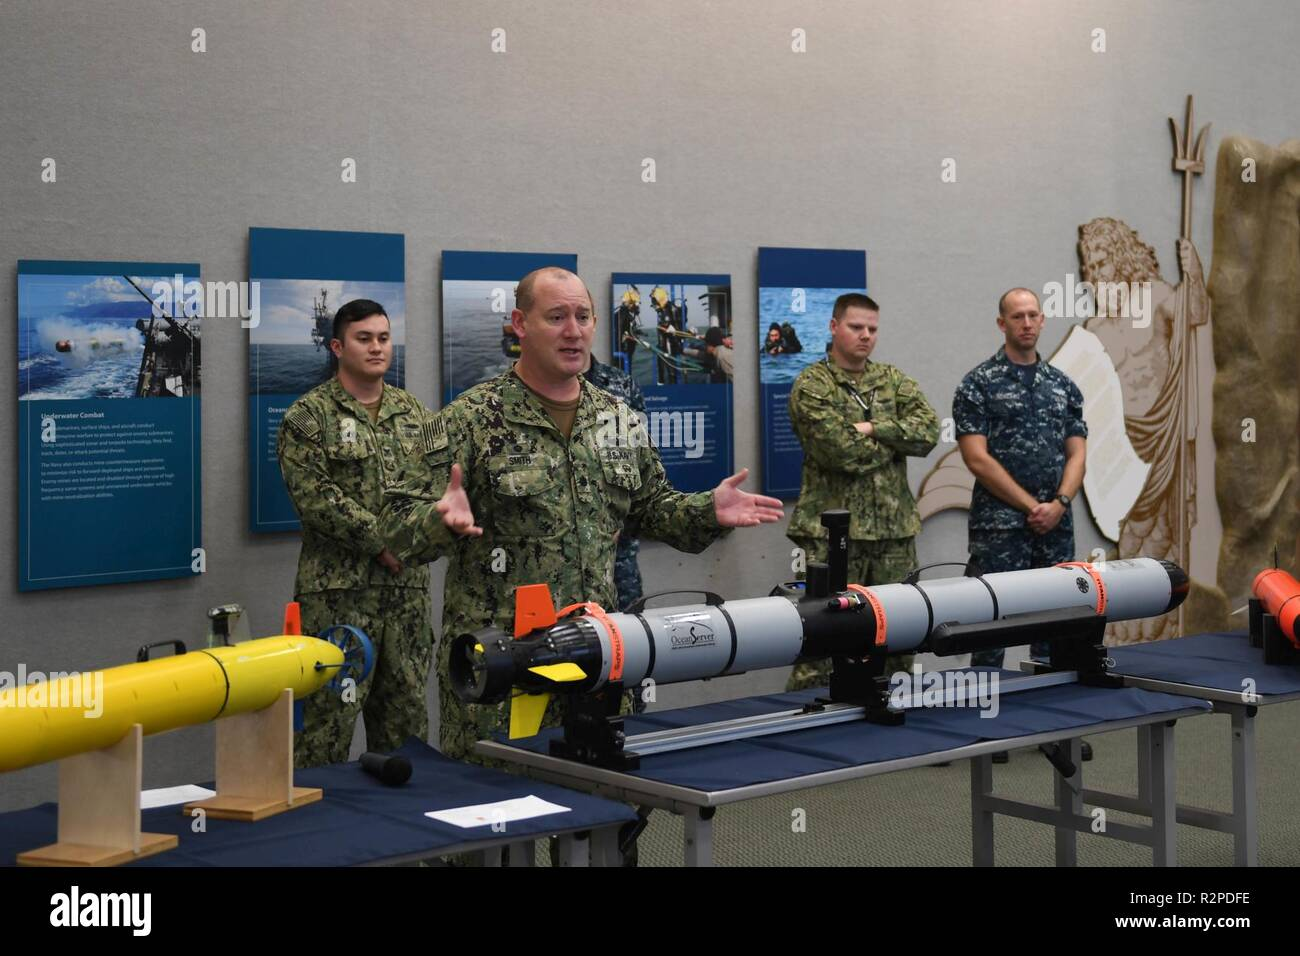 KEYPORT, Wash. (Nov. 3, 2018)  Cmdr. Scott J. Smith, commanding officer, Unmanned Undersea Vehicle Squadron One (UUVRON 1), speaks during Deep Sea Day at the United States Naval Undersea Museum (USNUM). USNUM is dedicated to educating the public about the U.S. Navy's undersea operations, technology, combat, research, and salvage operations. - Stock Image